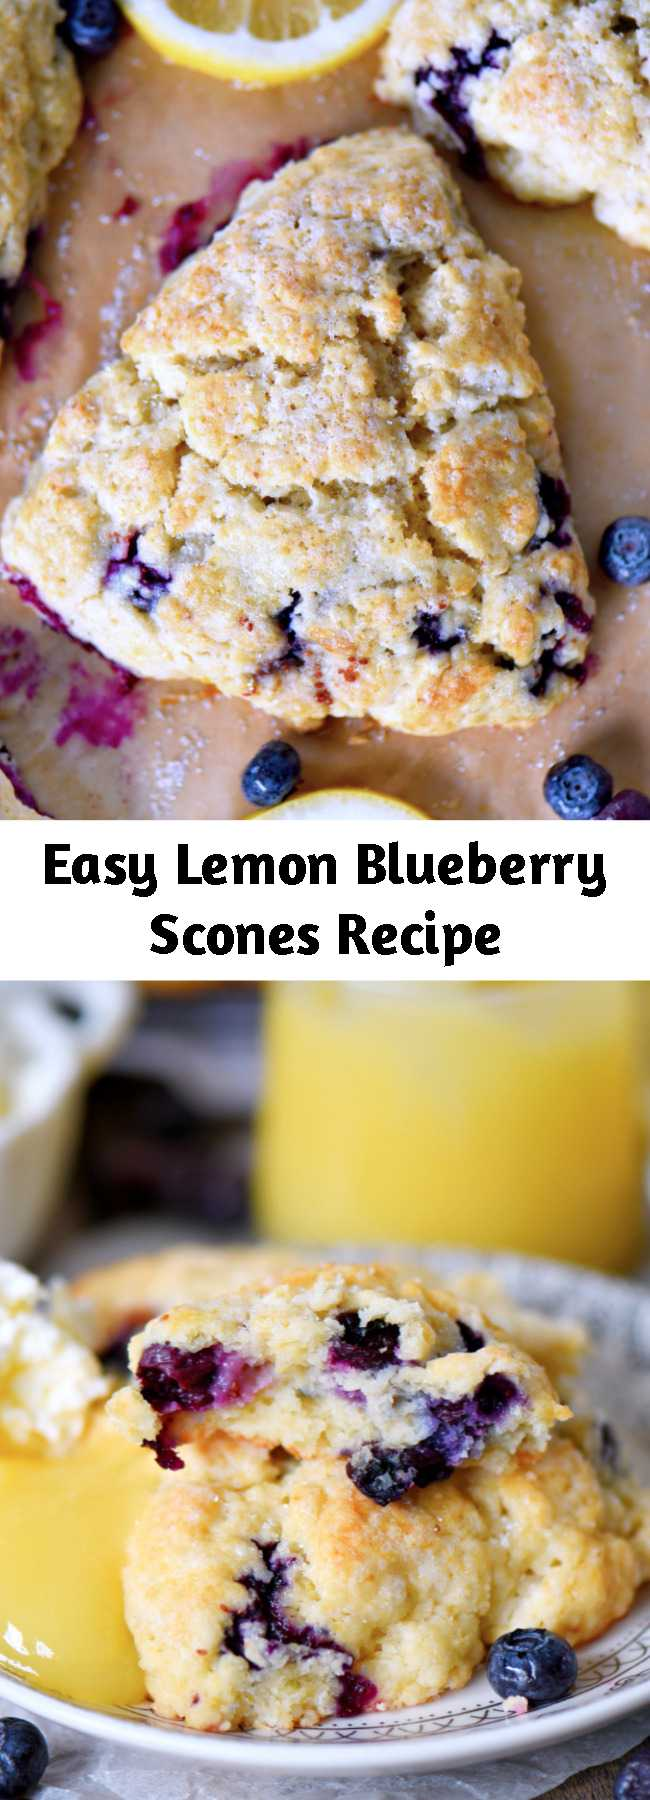 Easy Lemon Blueberry Scones Recipe - This Lemon Blueberry Scones recipe is a delightful addition to any breakfast or brunch! Fresh blueberries and loads of lemon zest add an irresistible freshness to these easy to make scones. Serve with lemon curd and cream for an afternoon tea experience everyone will love! #brunch #breakfast #tea #blueberries #blueberry #lemon #scones #scone #recipe #recipes